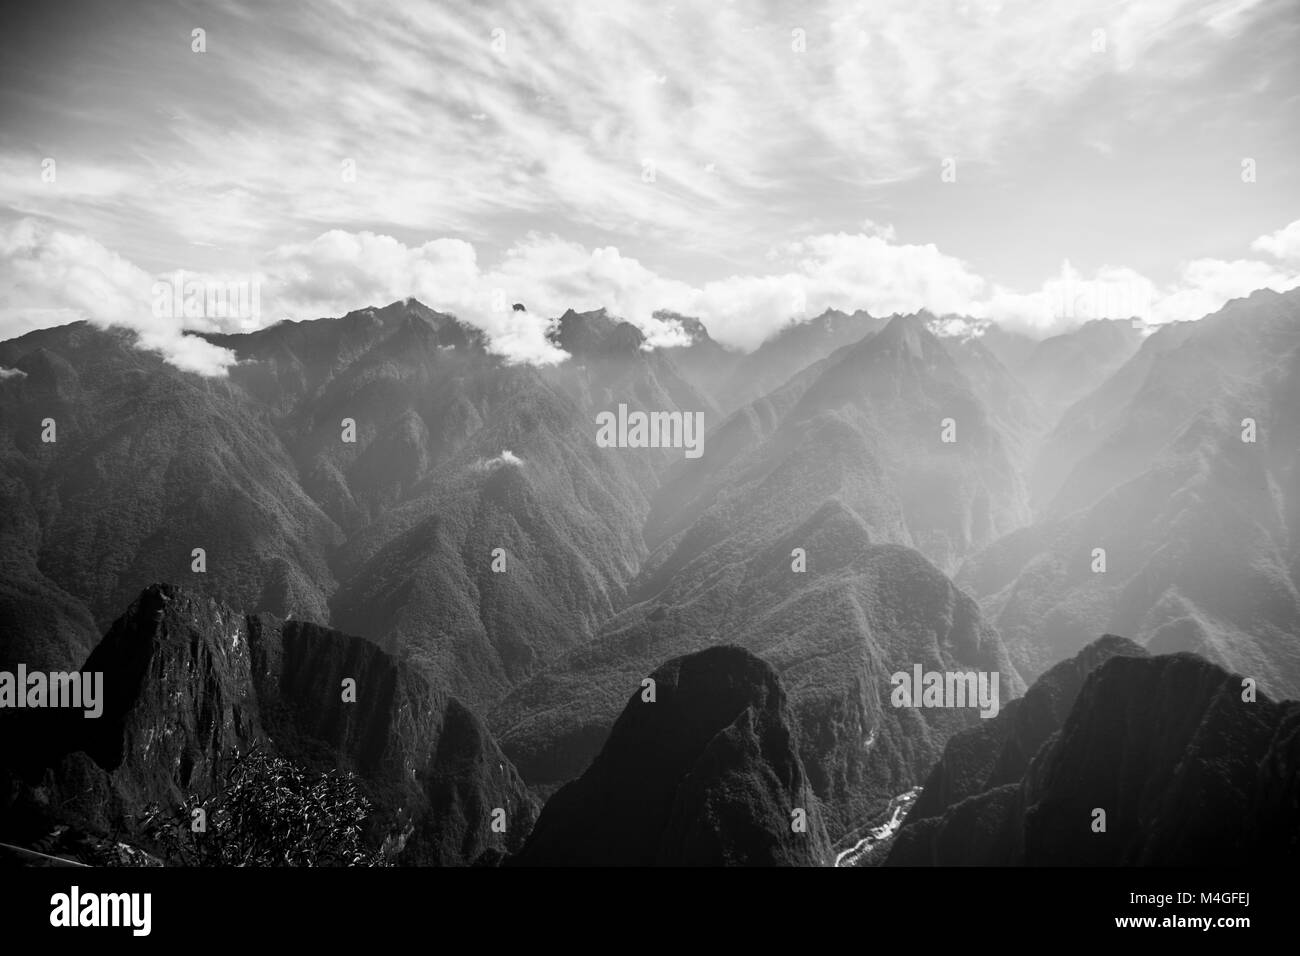 Andes mountains, Peru - Stock Image